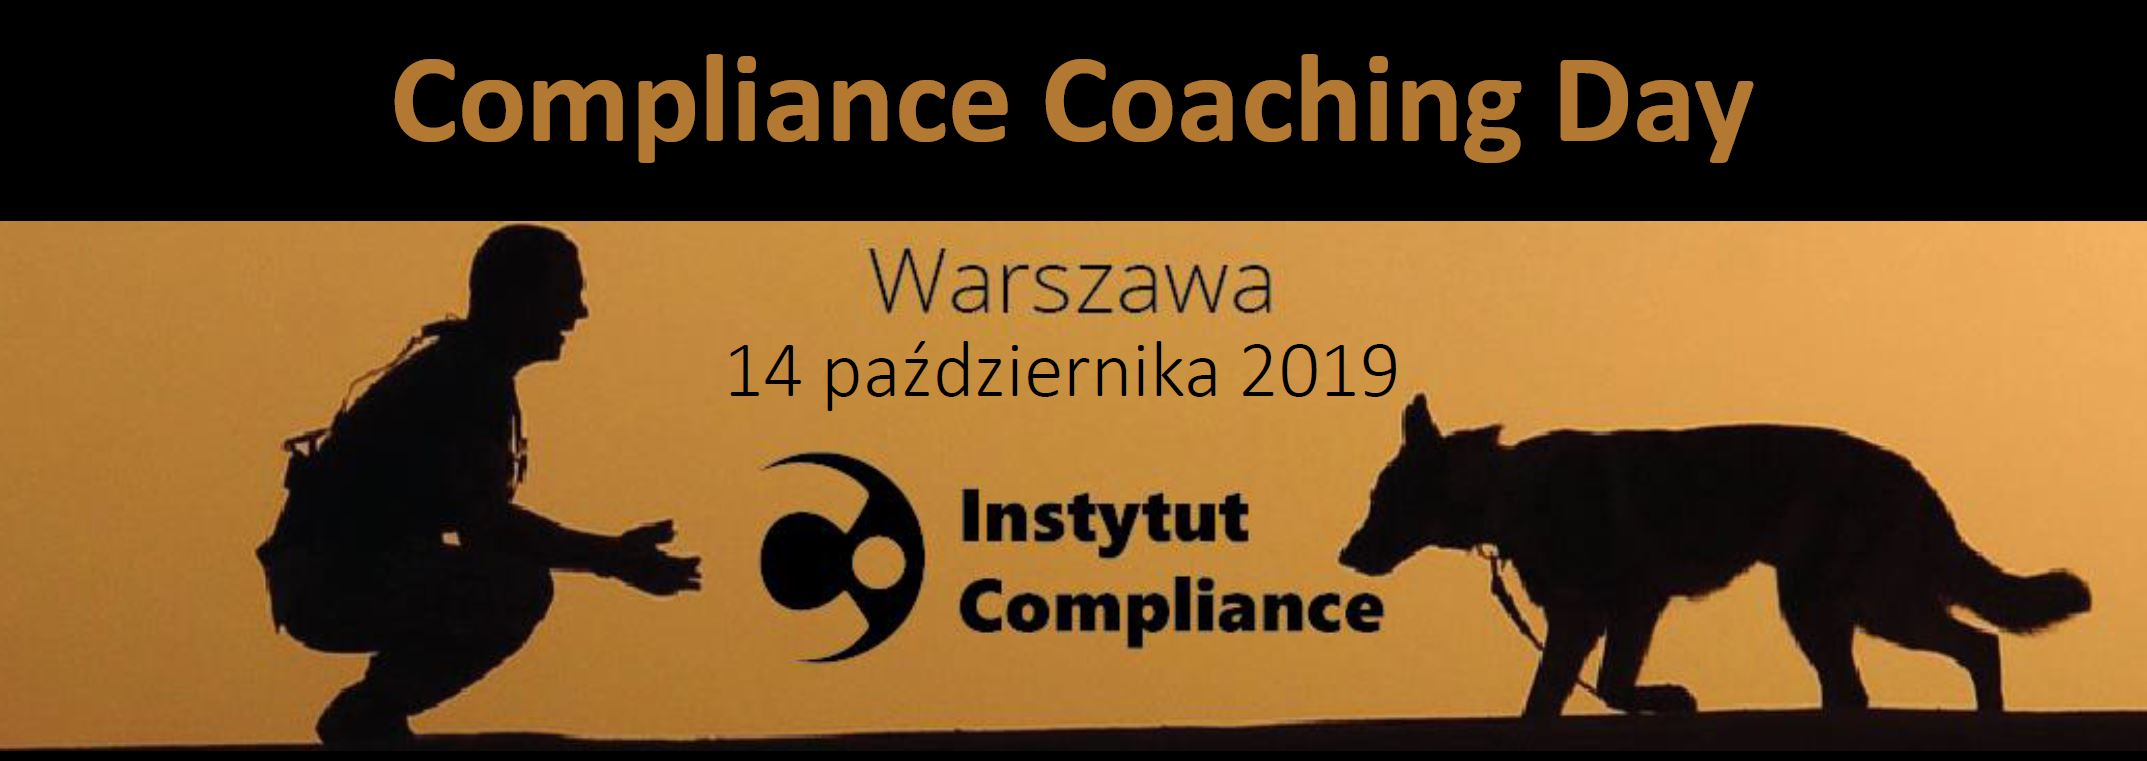 Coaching Day 2019